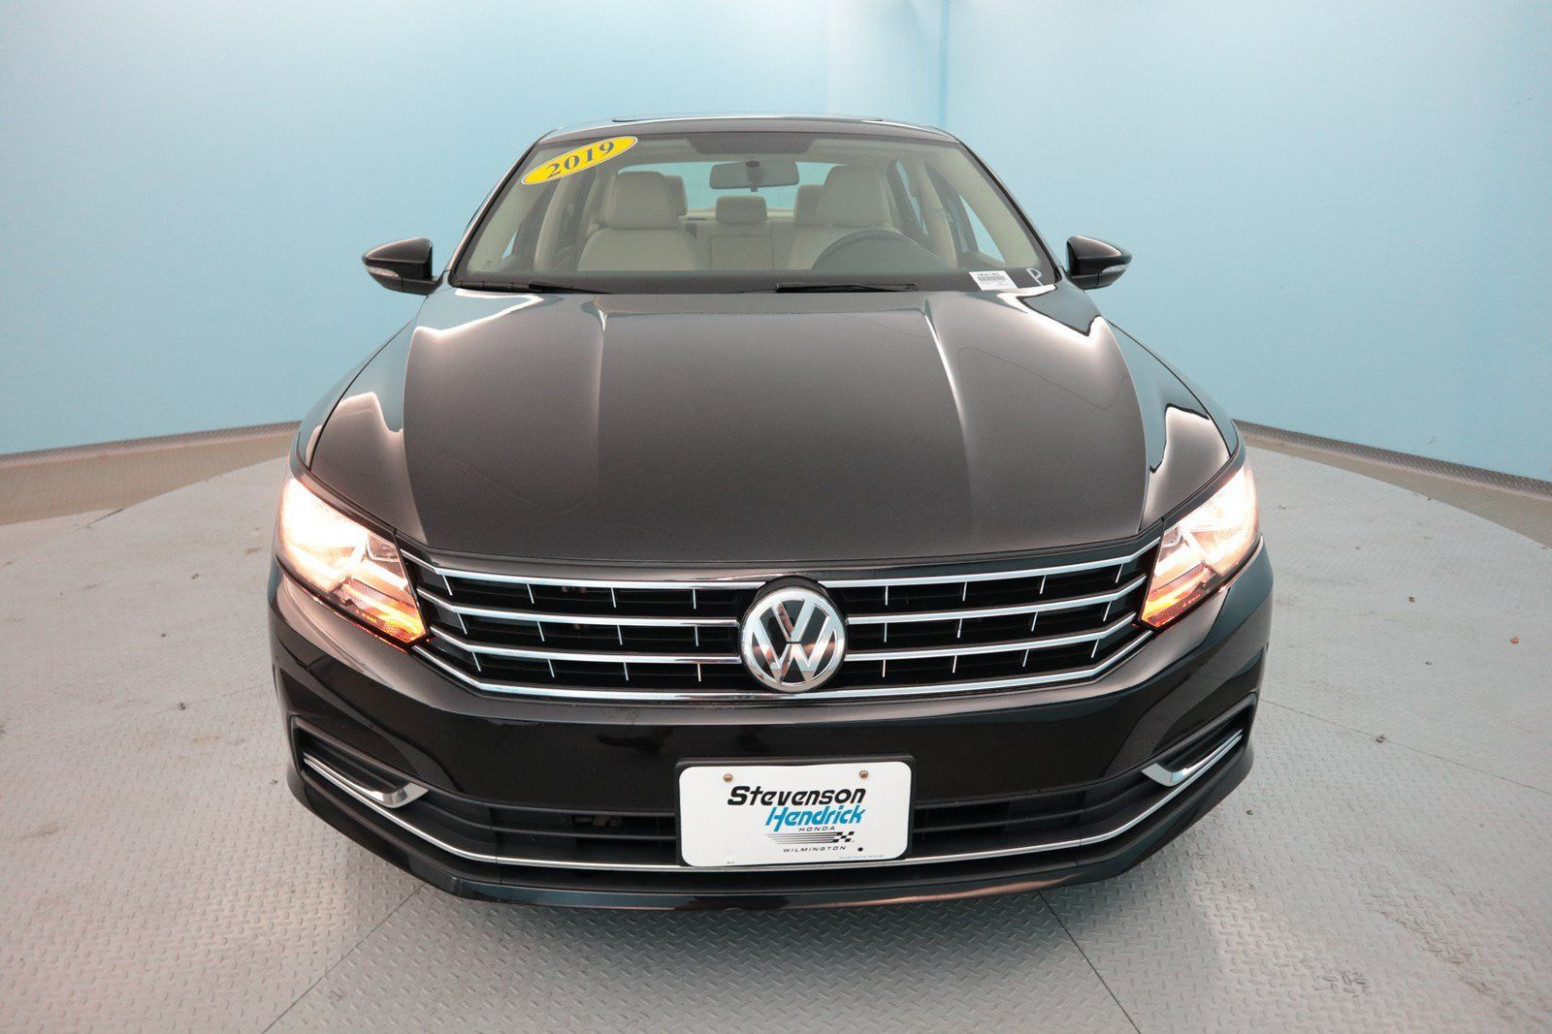 8 volkswagen passat 8.8t wolfsburg edition Redesign, Price and ...